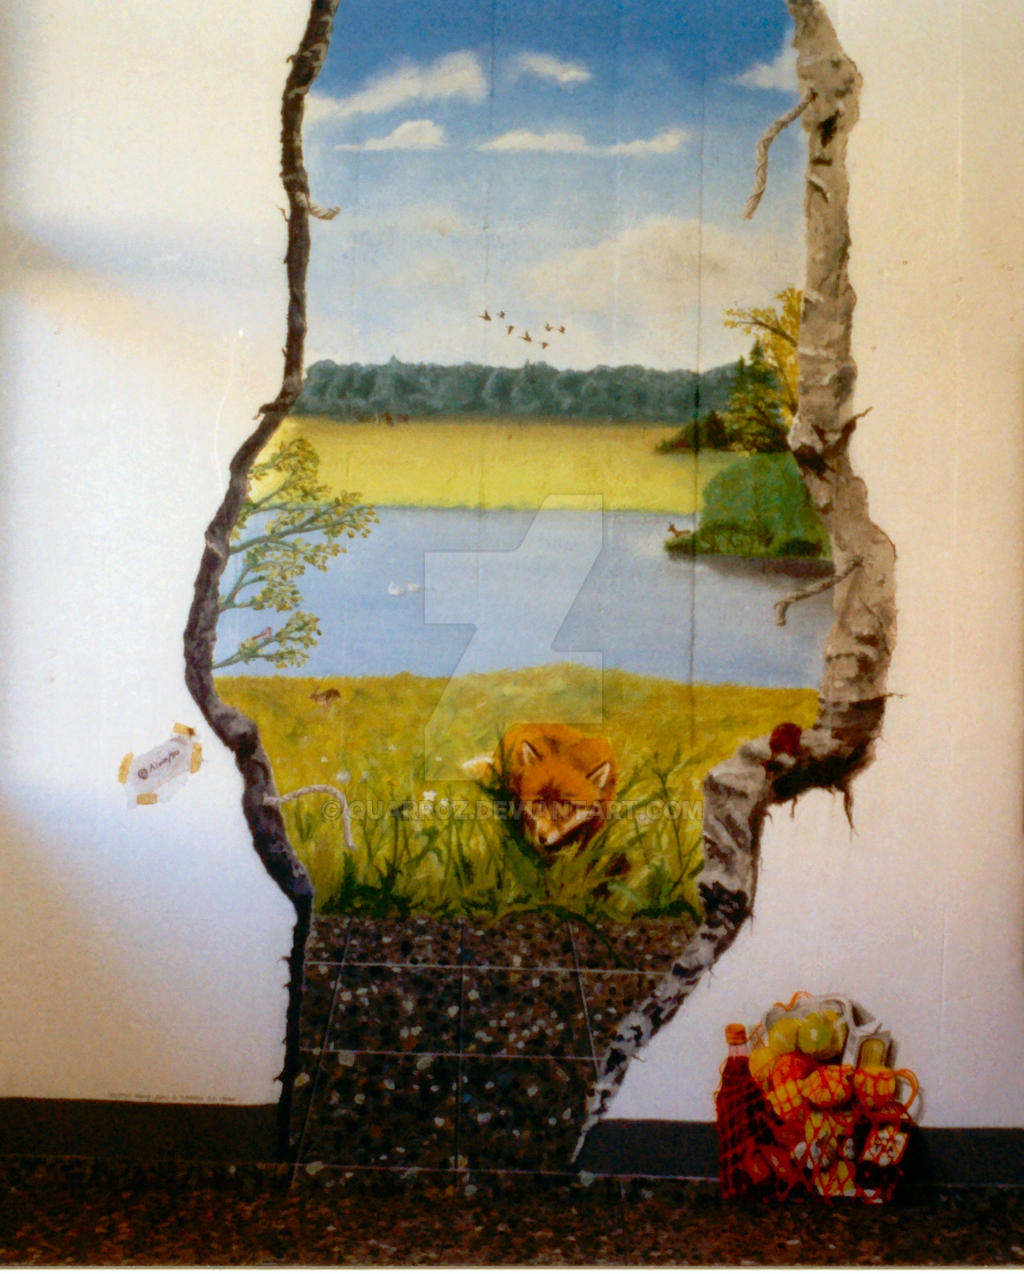 hole in the wall by Quarroz on DeviantArt